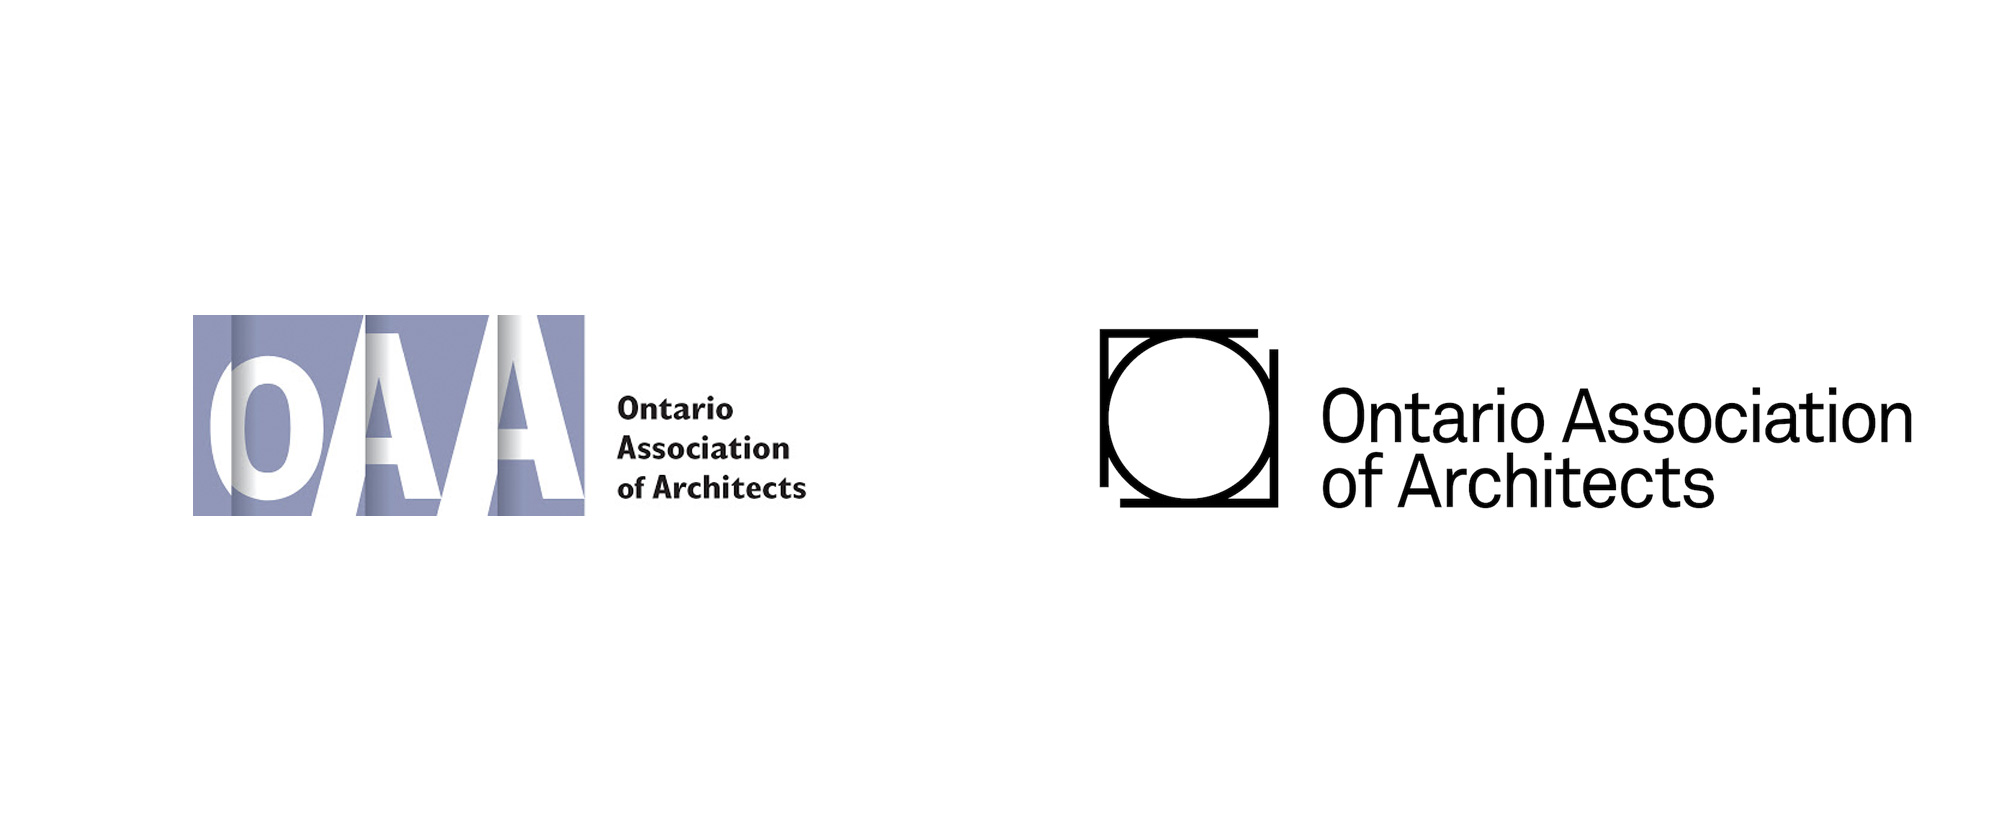 New Logo for Ontario Association of Architects by Leo Burnett Canada